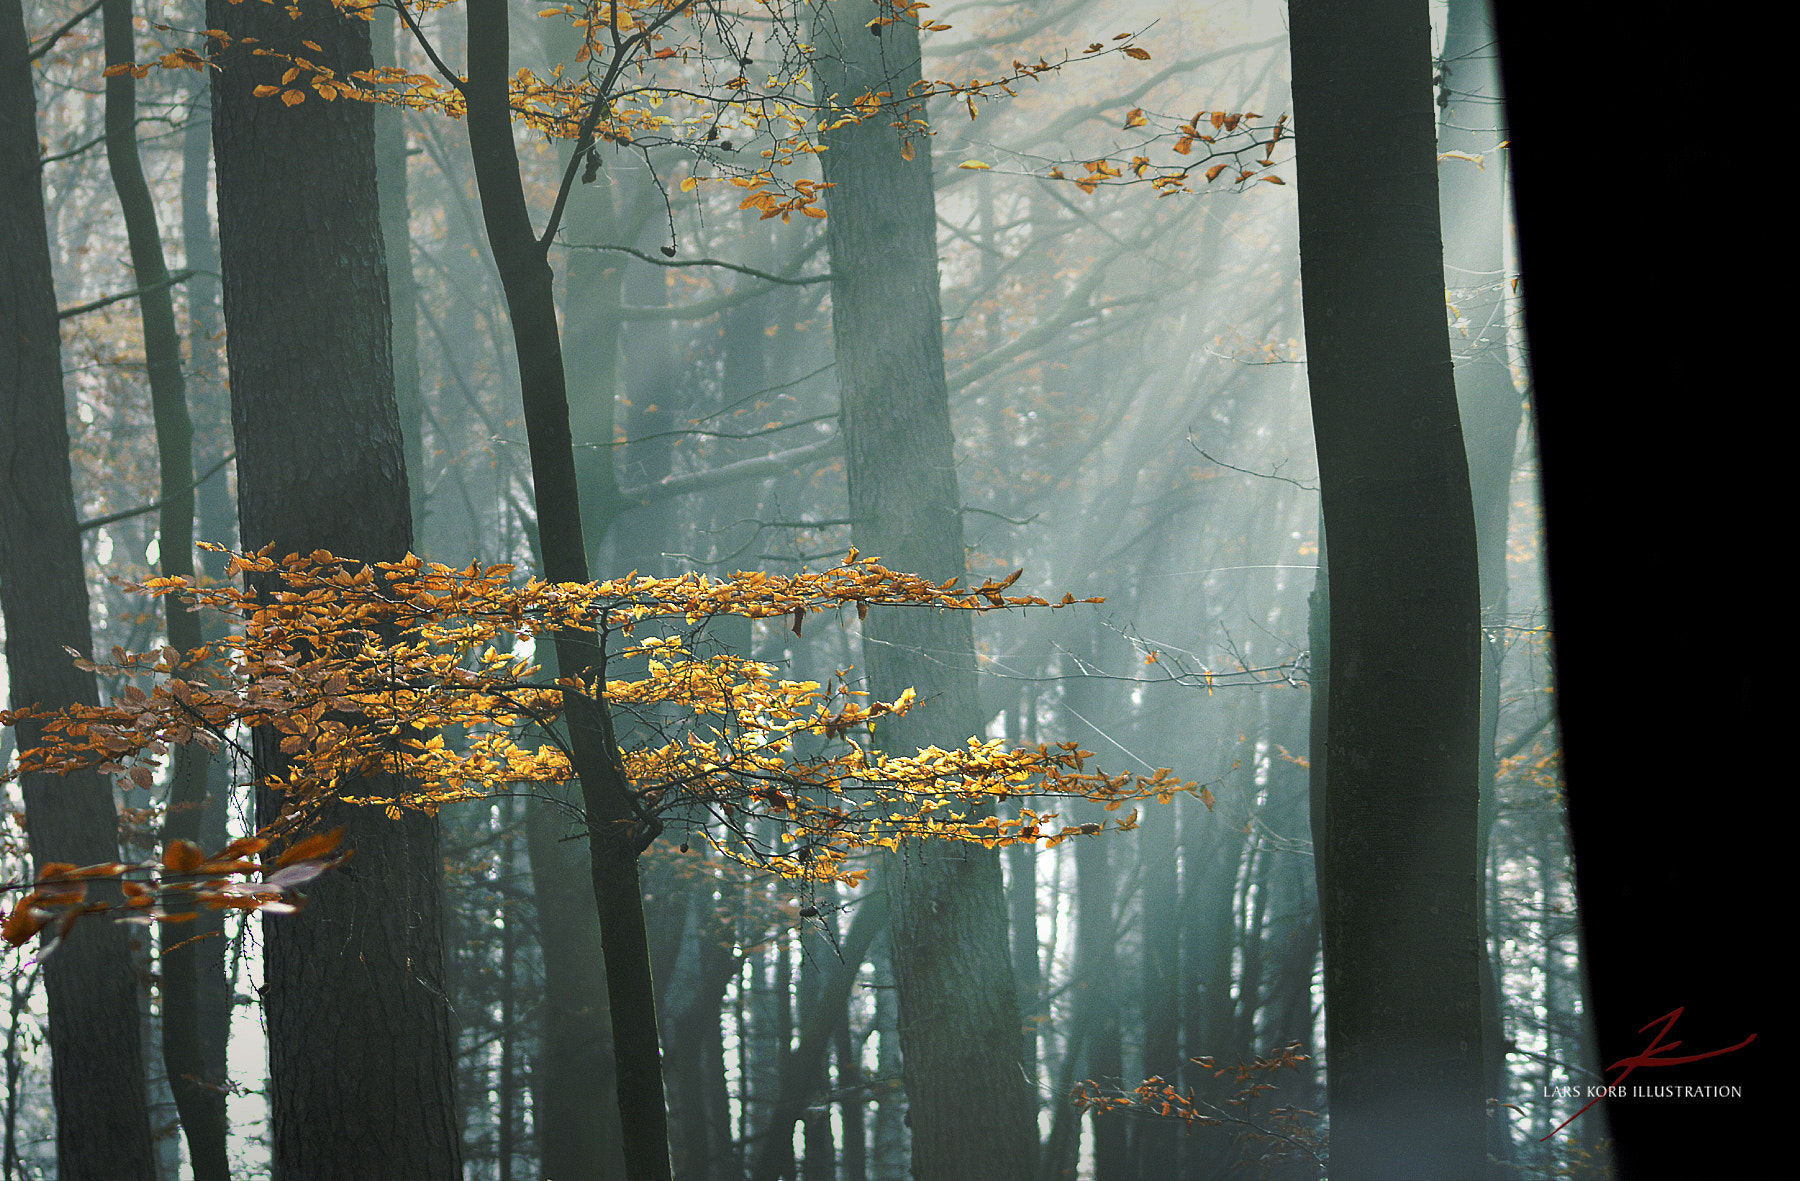 Photograph Foggy November Forest by Lars Korb on 500px